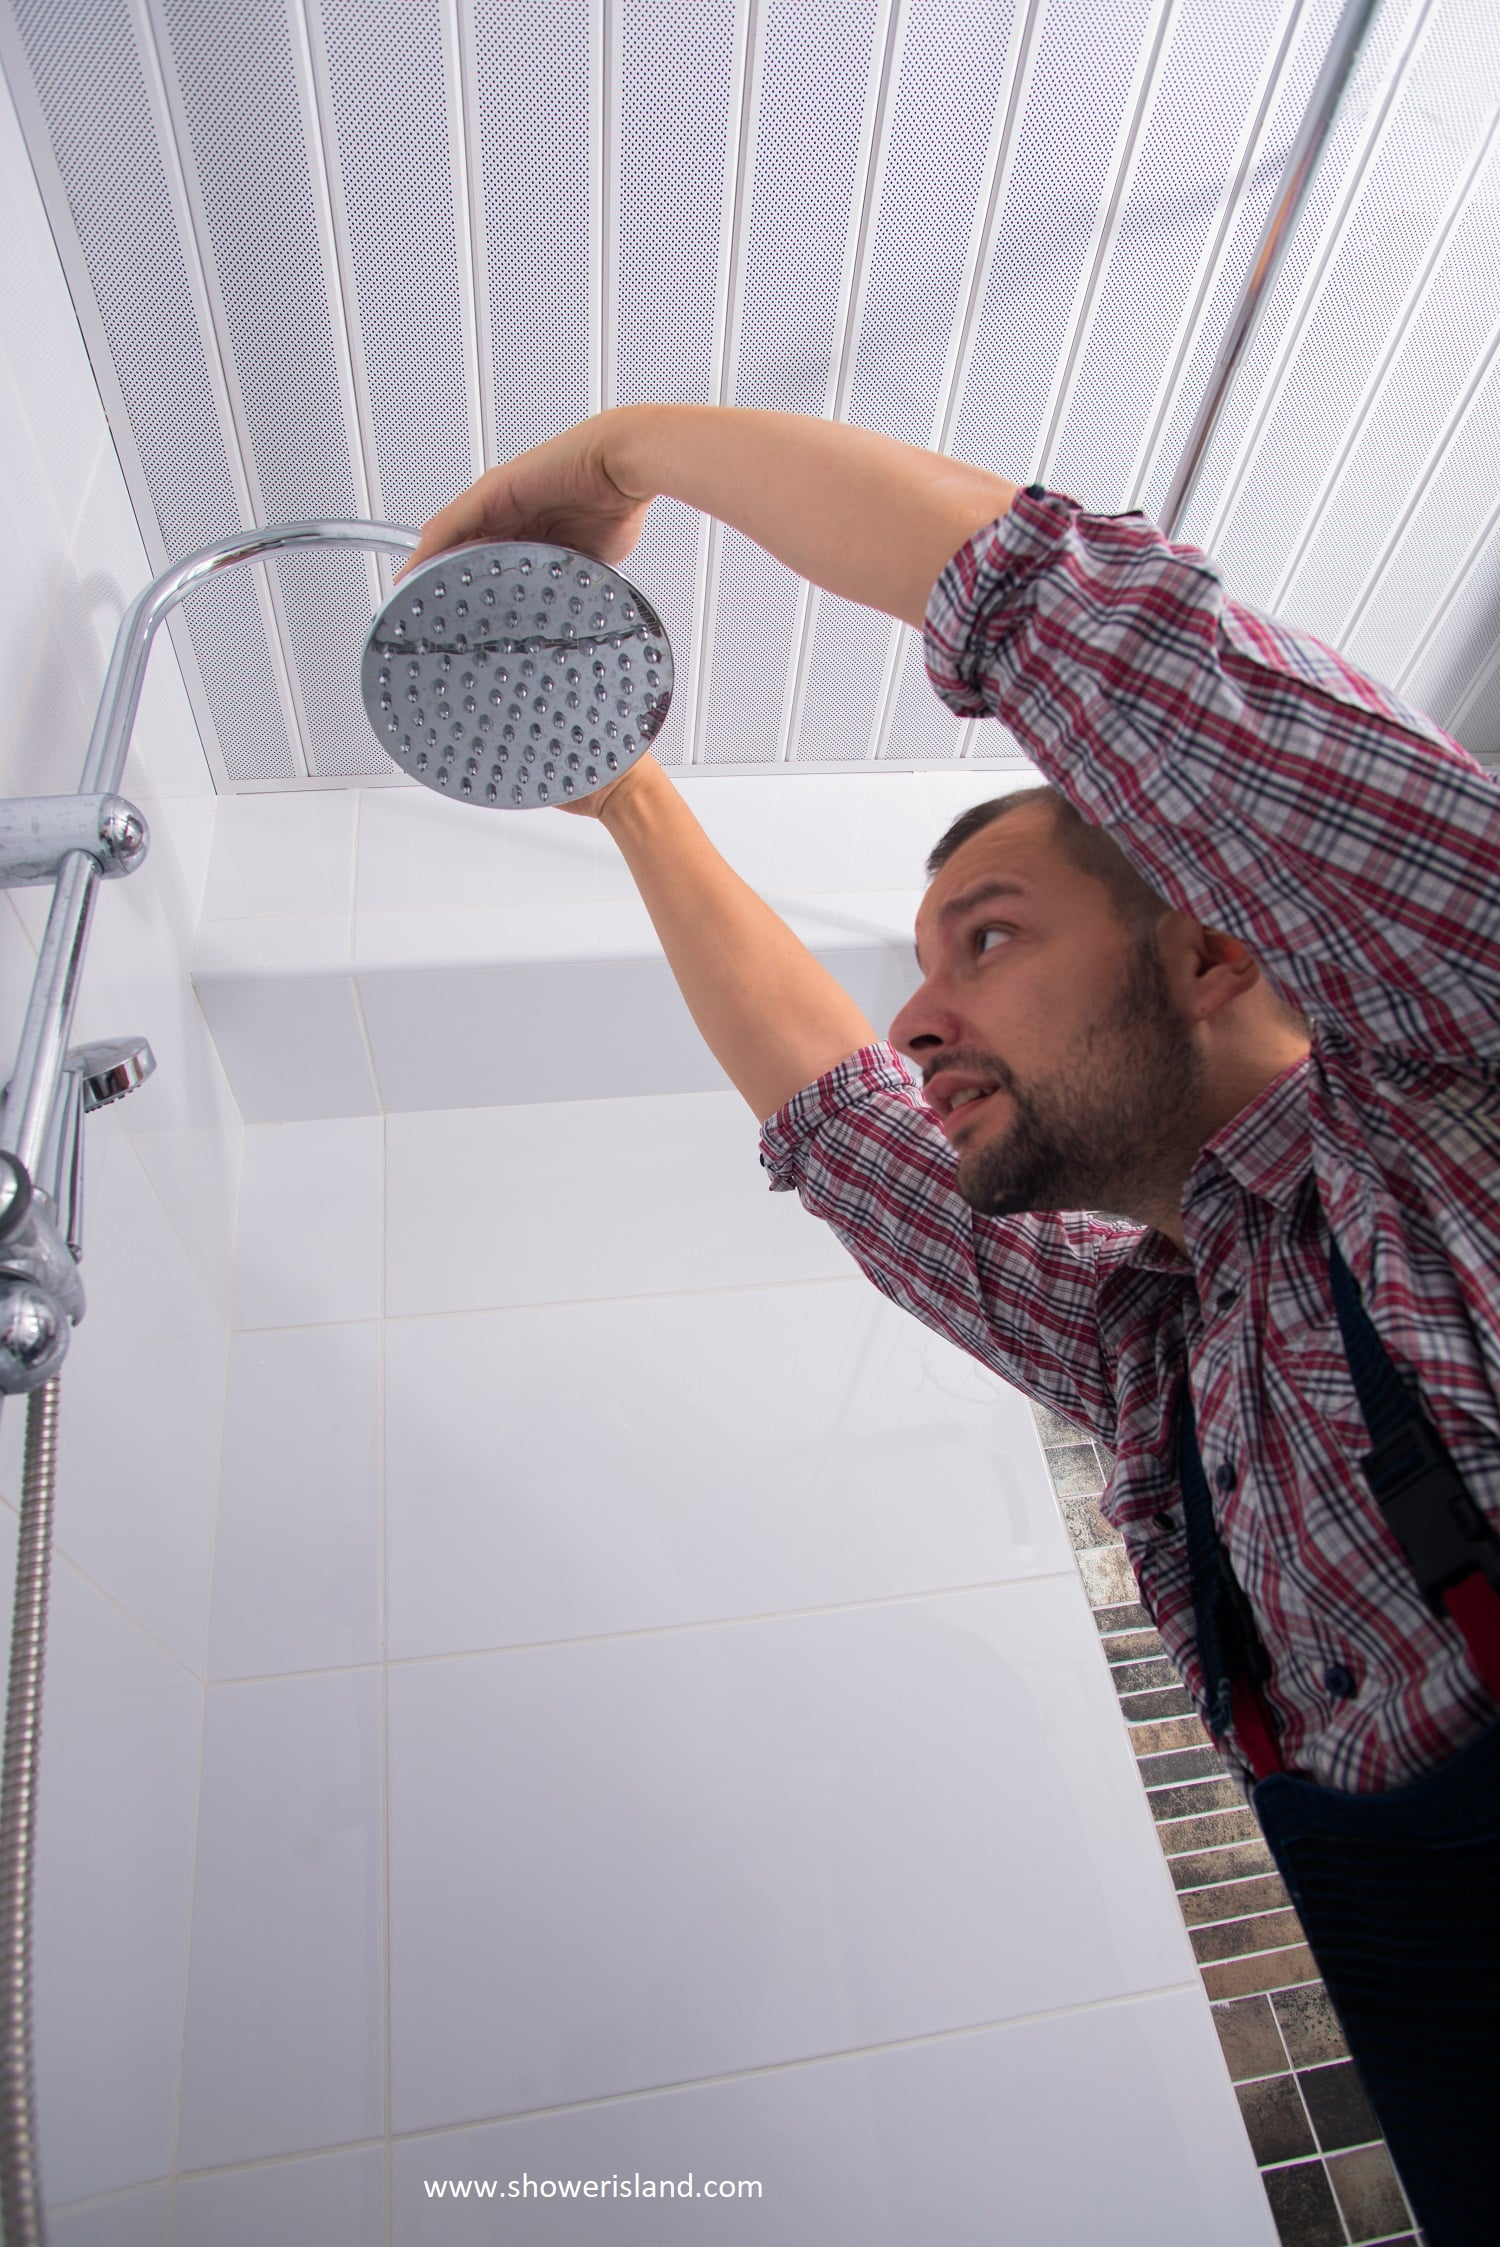 How to Remove a Shower Head the Right Way